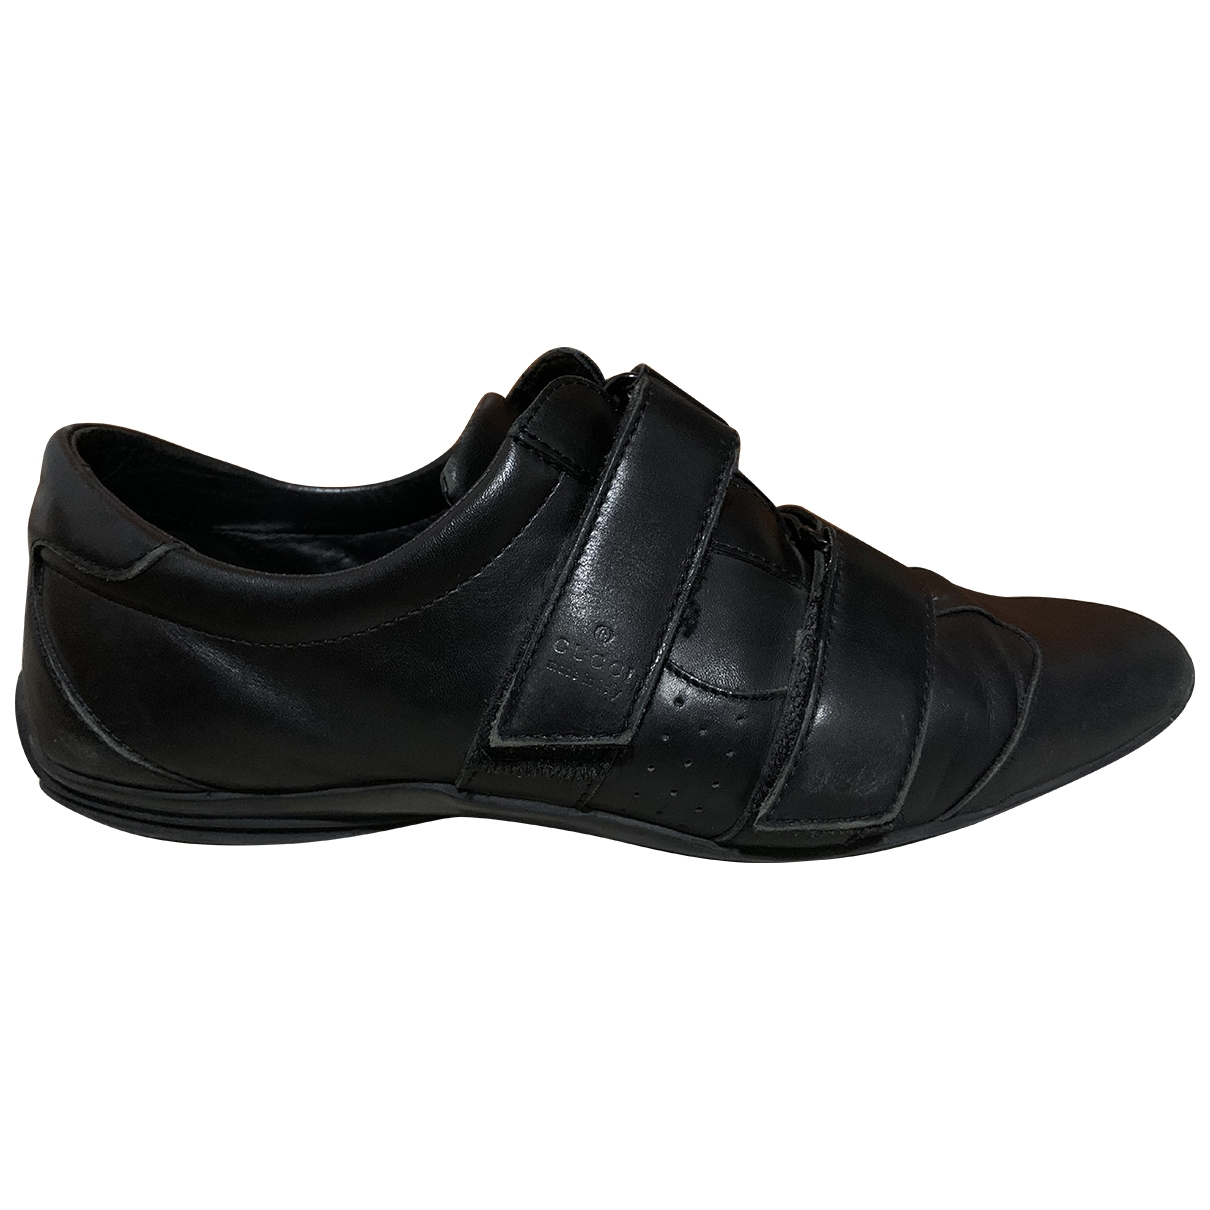 Gucci \N Black Leather Trainers for Women 39.5 EU